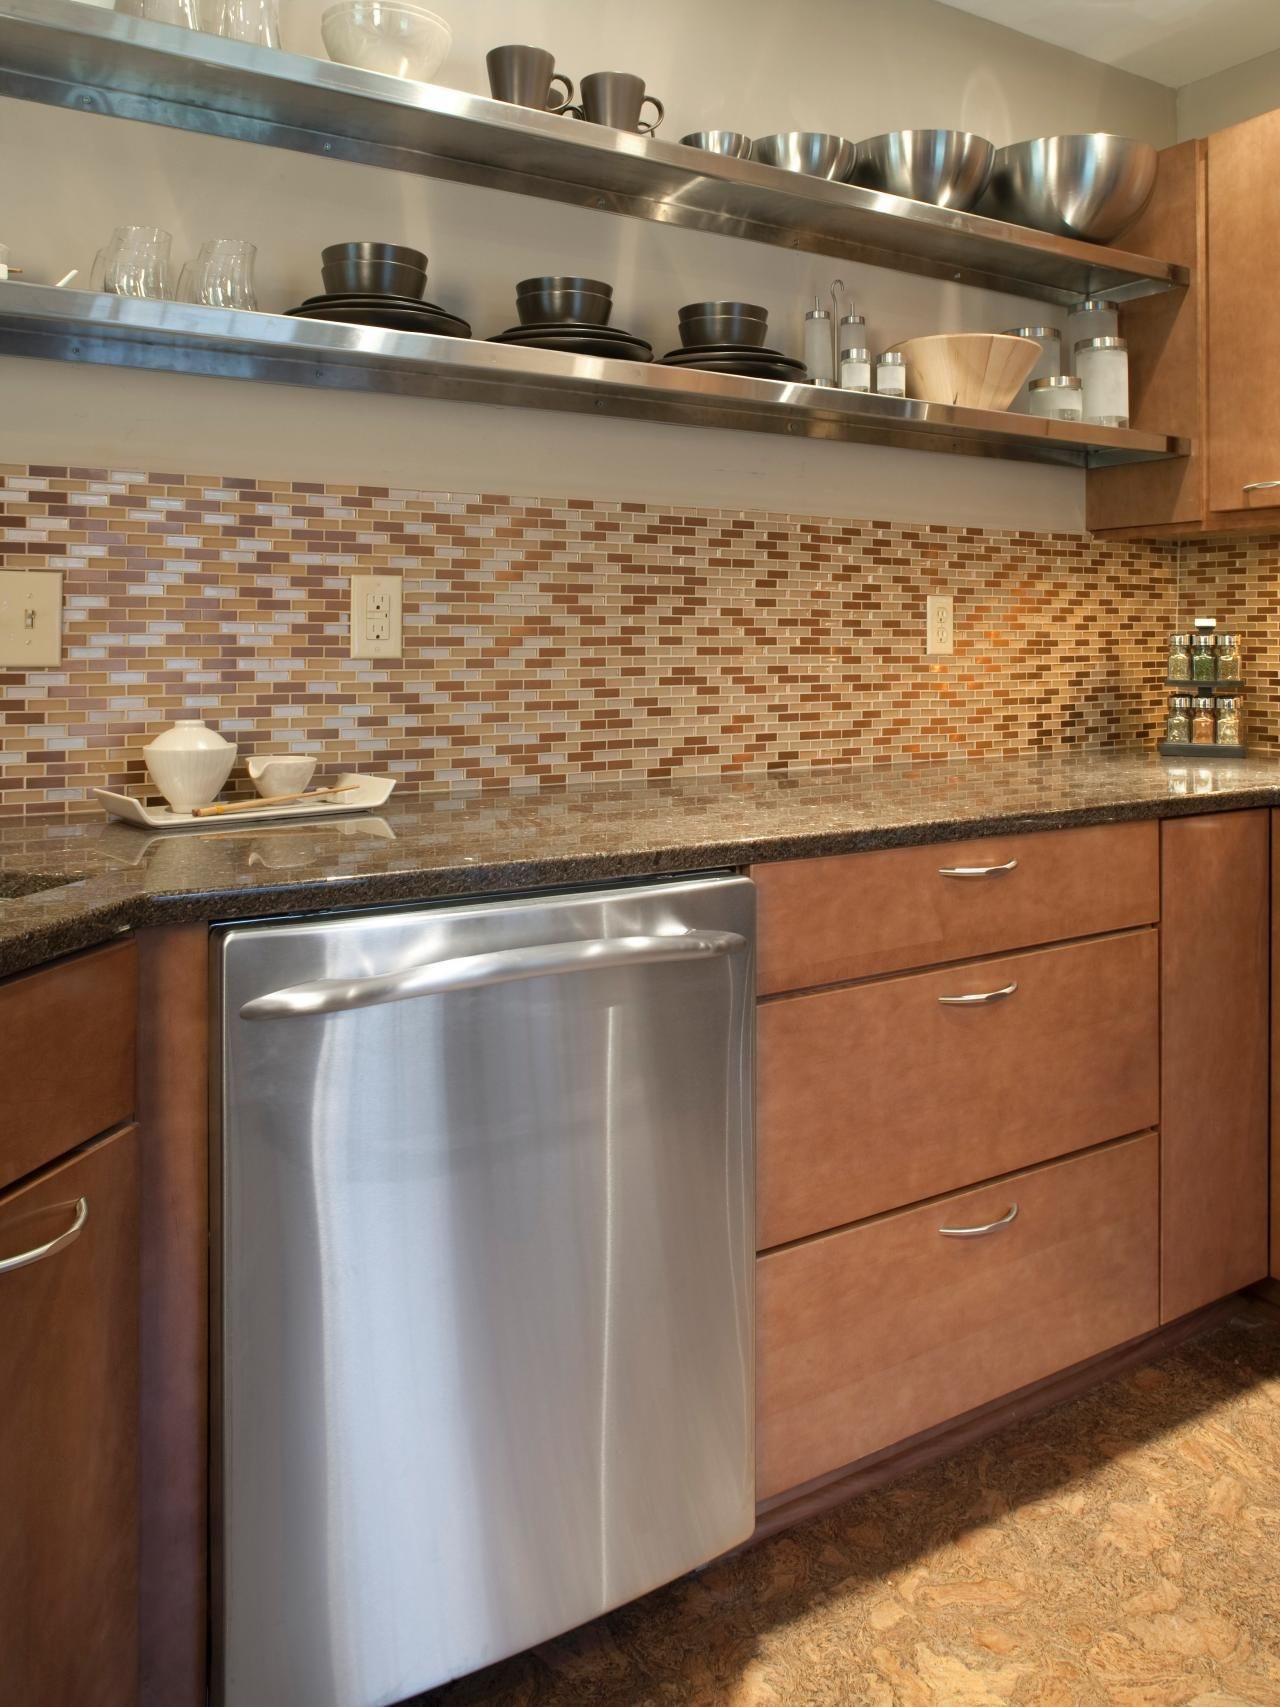 """Functionality meets contemporary design in this modern twist on the classic """"chef's kitchen."""" Stainless steel shelving works to conserve space while adding variation and depth to the neutral color scheme. A mosaic tile backsplash adds warmth and complexity to the space."""